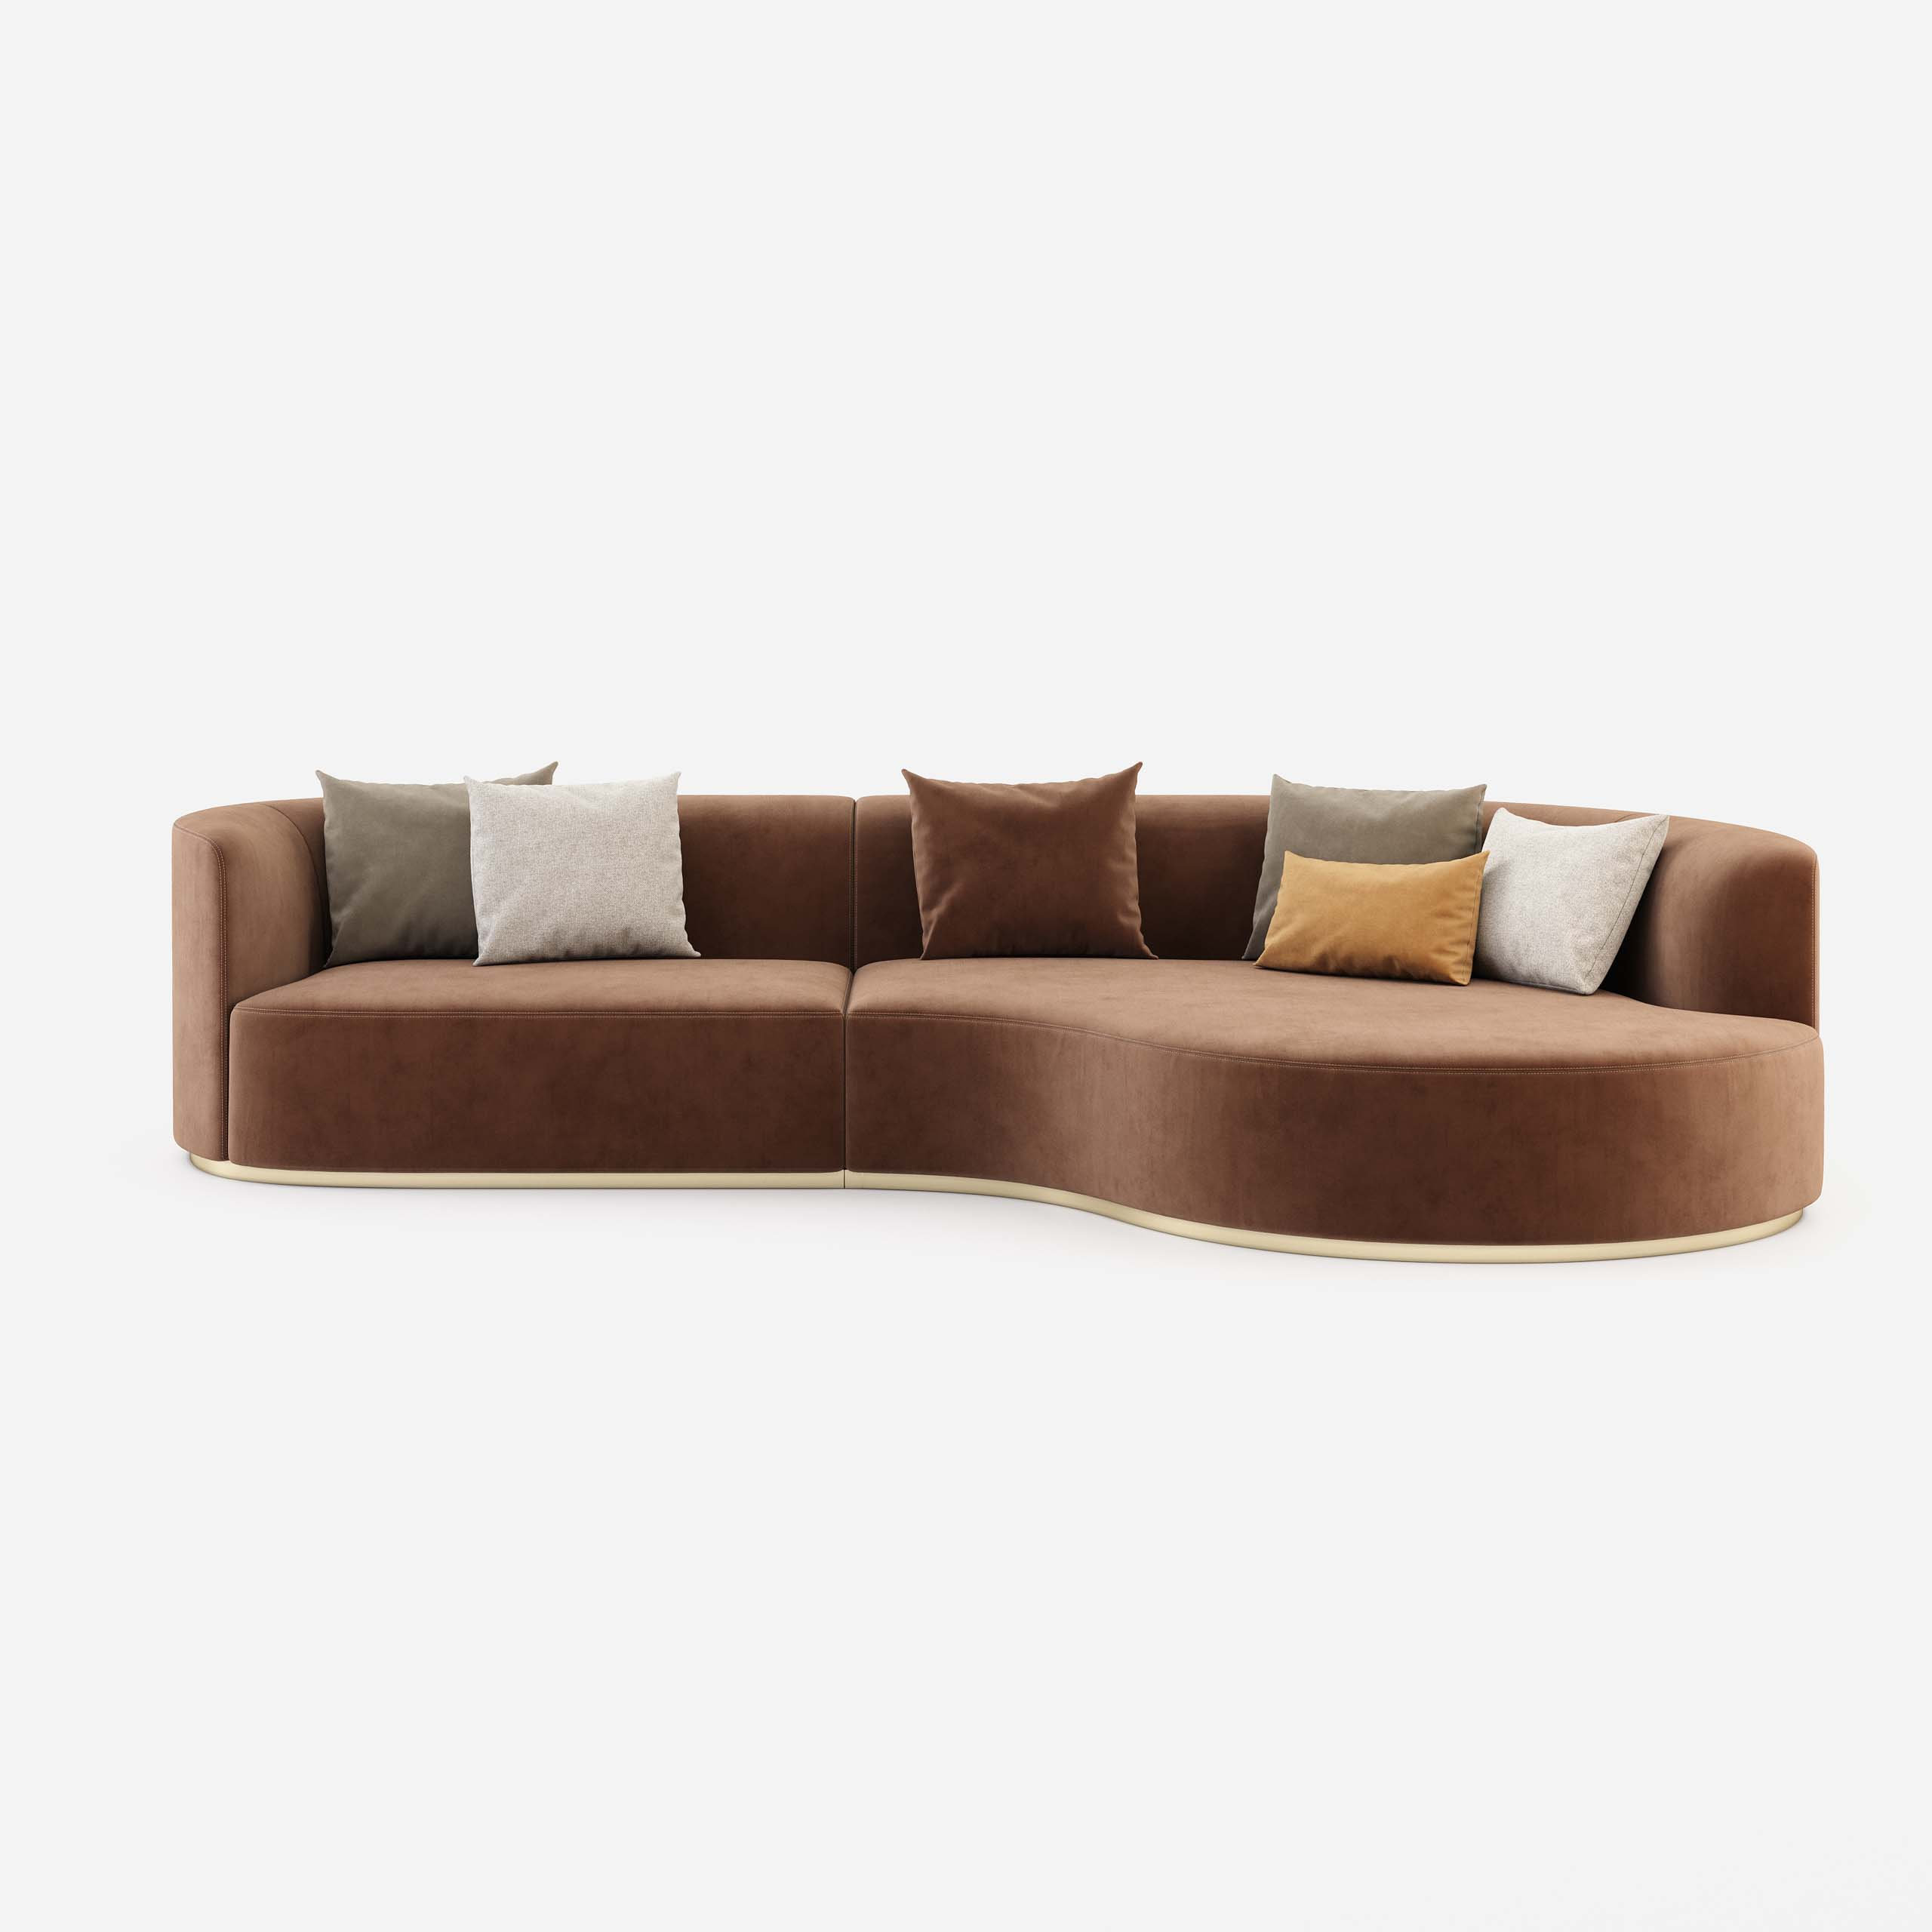 chloe-sofa-domkapa-2021-new-collection-living-room-decor (10)